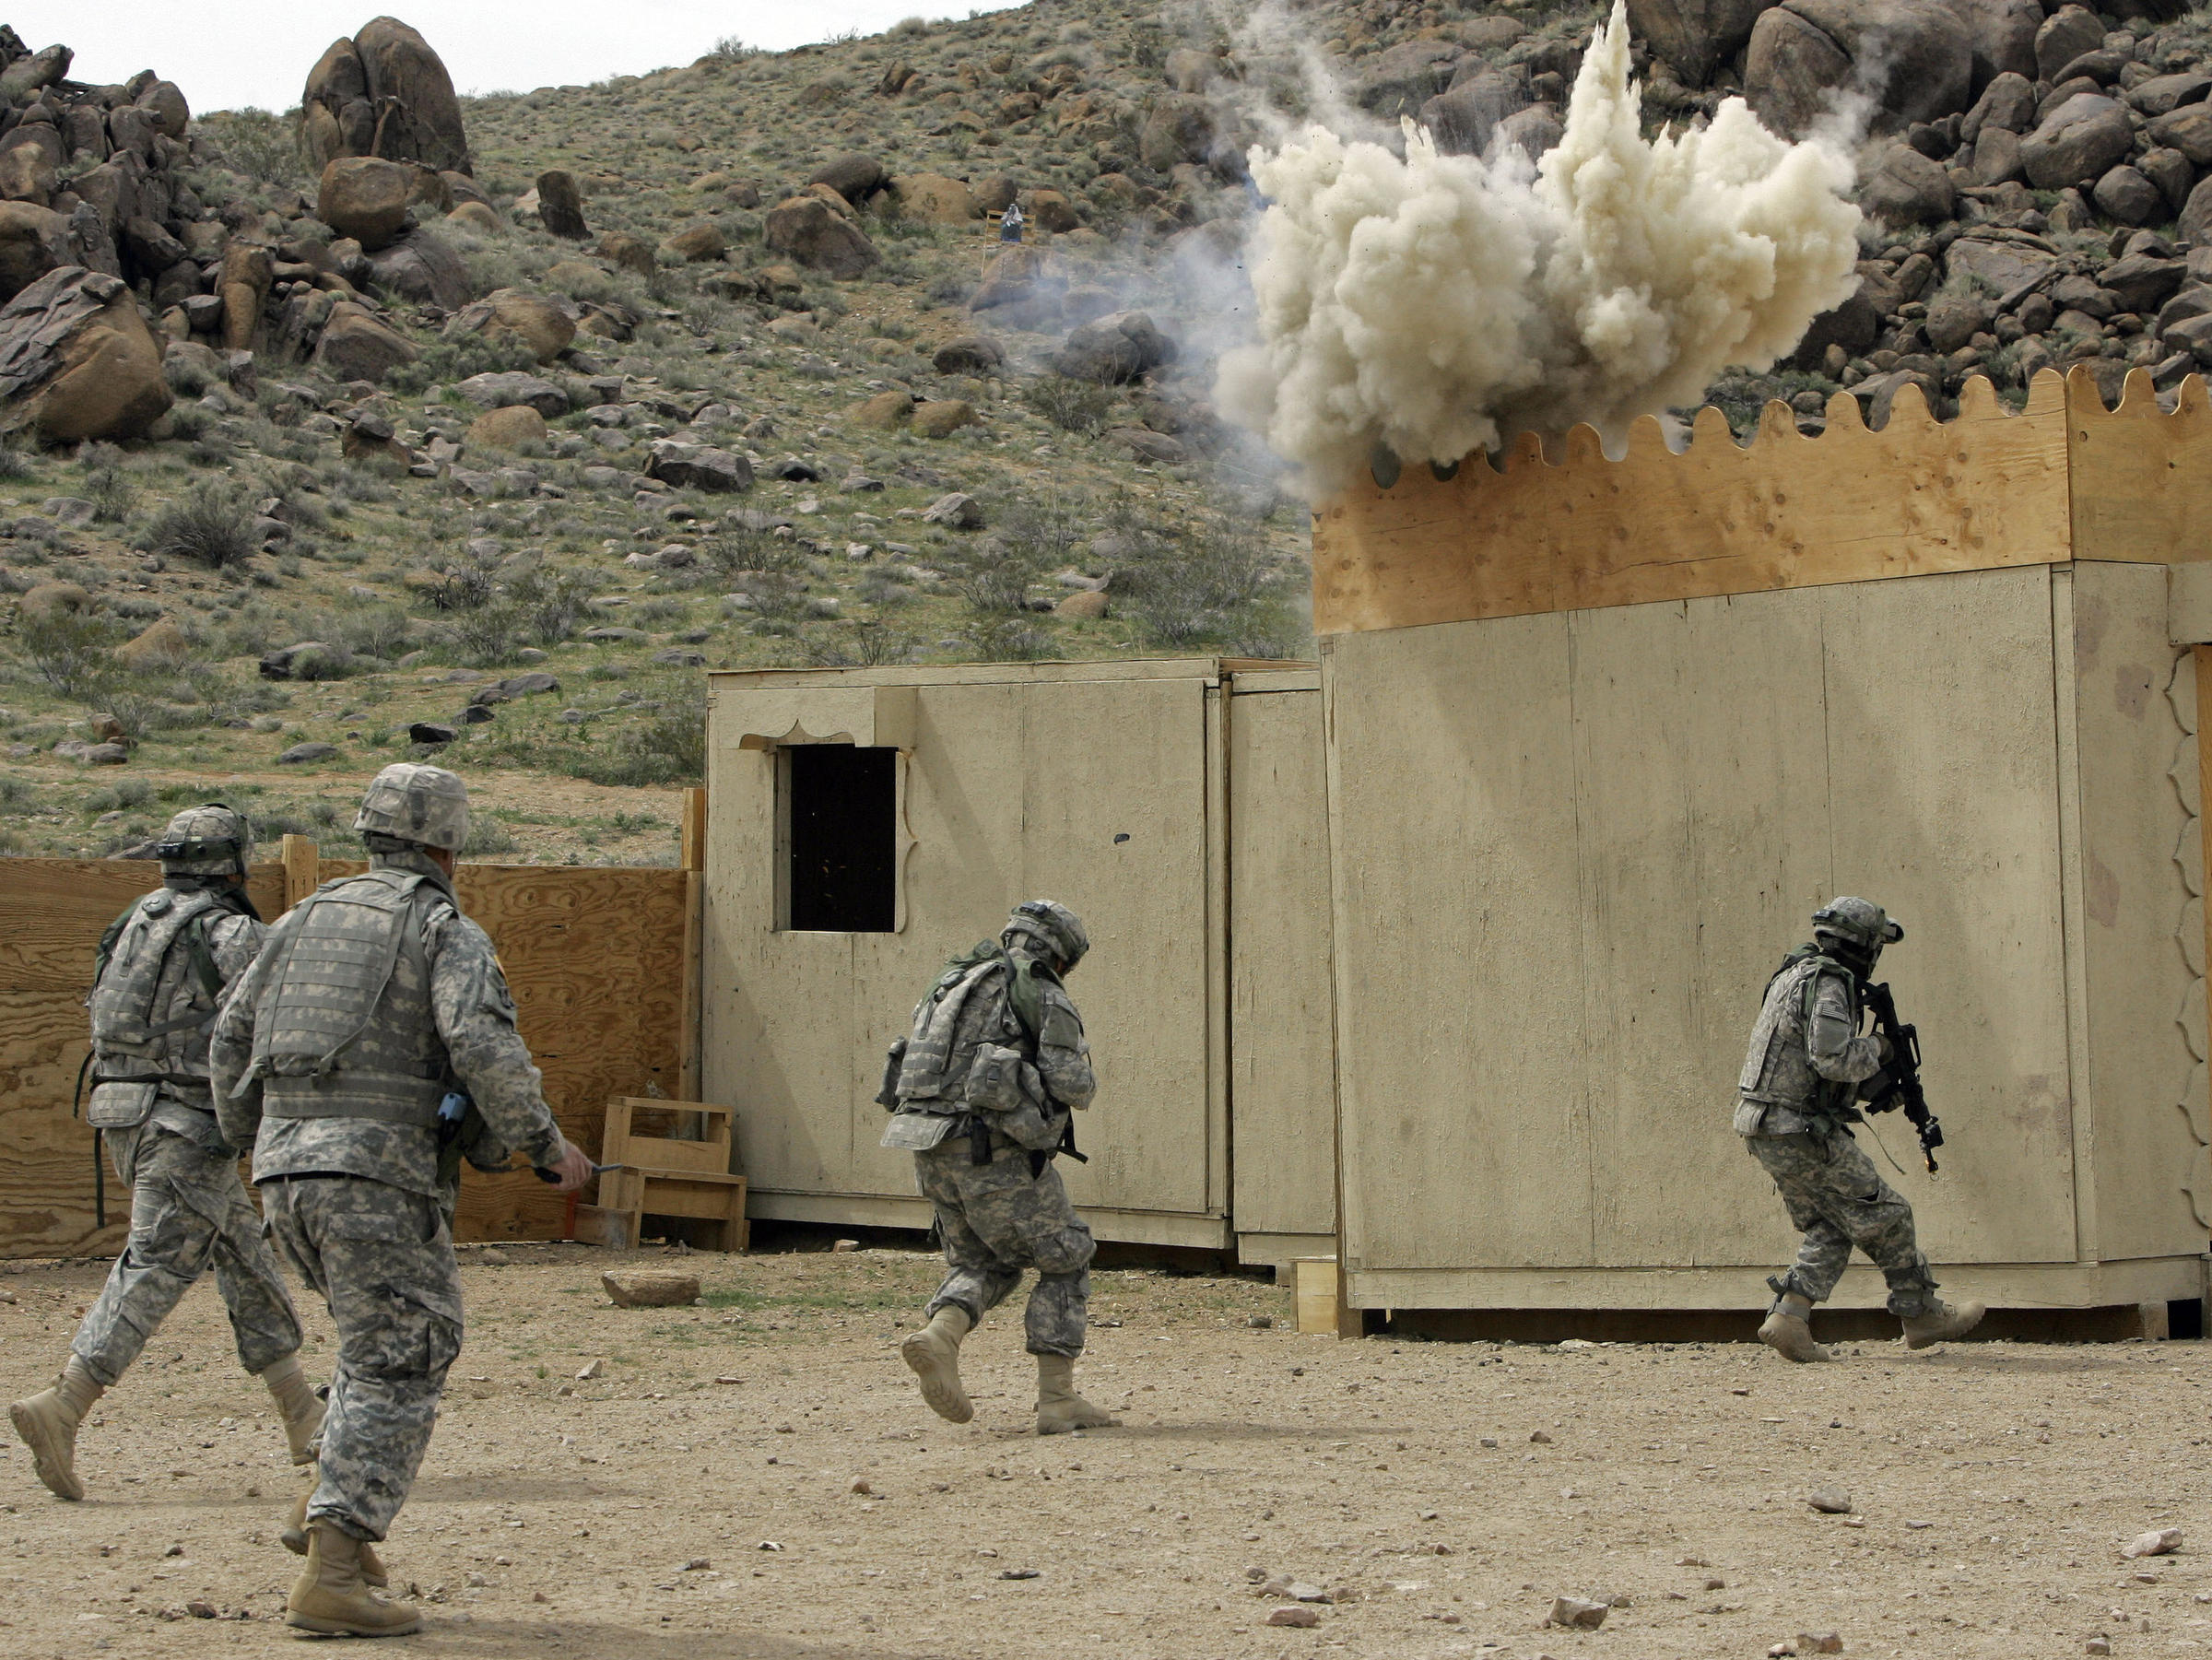 Training For An Uncertain Military Future In The Calif  Desert | WPSU